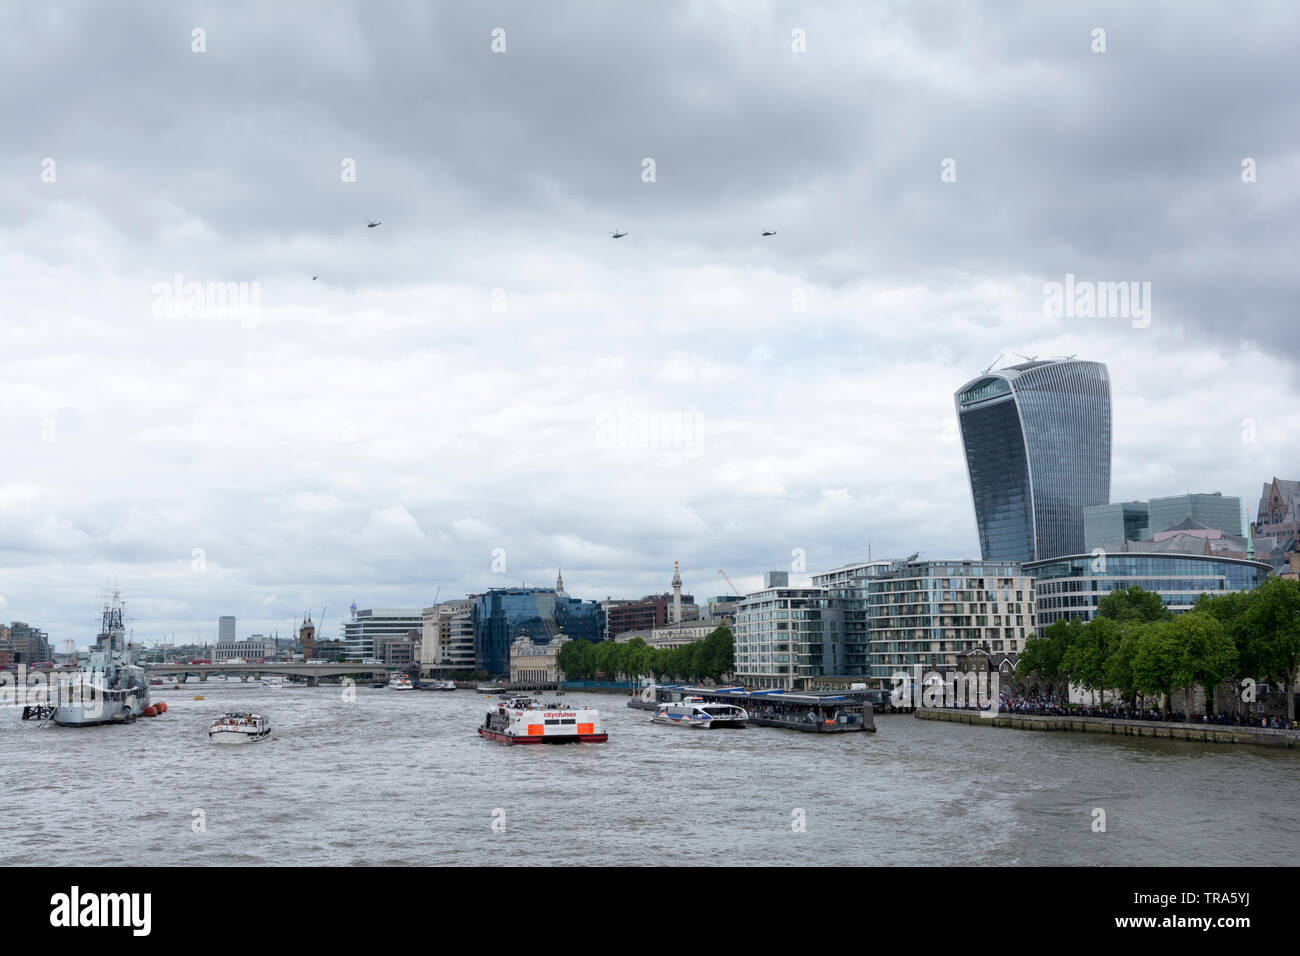 Helicopters from President Donald Trump's visit to London, surveying London's ever-changing skyline as new skyscrapers are added to the mix - Stock Image